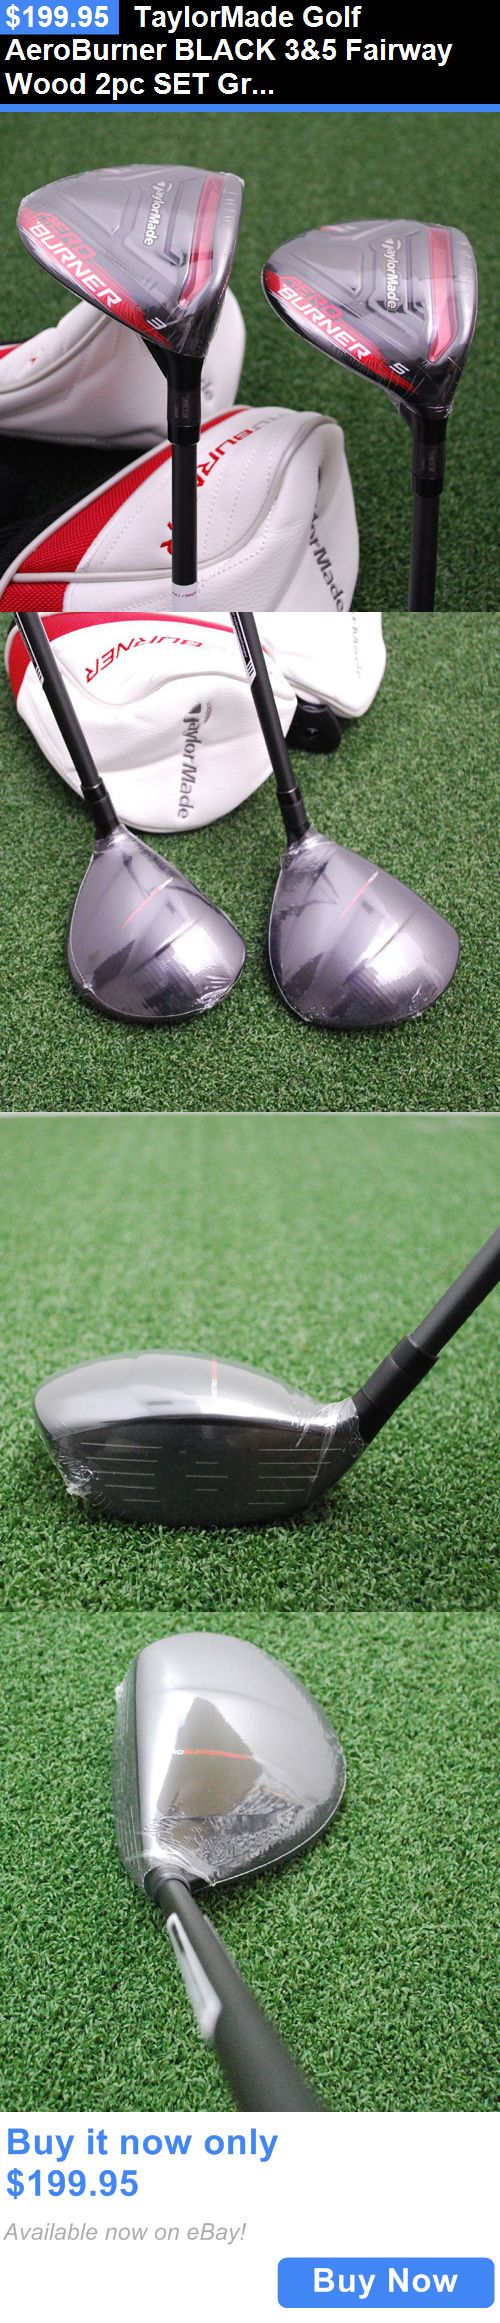 sporting goods: Taylormade Golf Aeroburner Black 3And5 Fairway Wood 2Pc Set Graphite Regular - New BUY IT NOW ONLY: $199.95